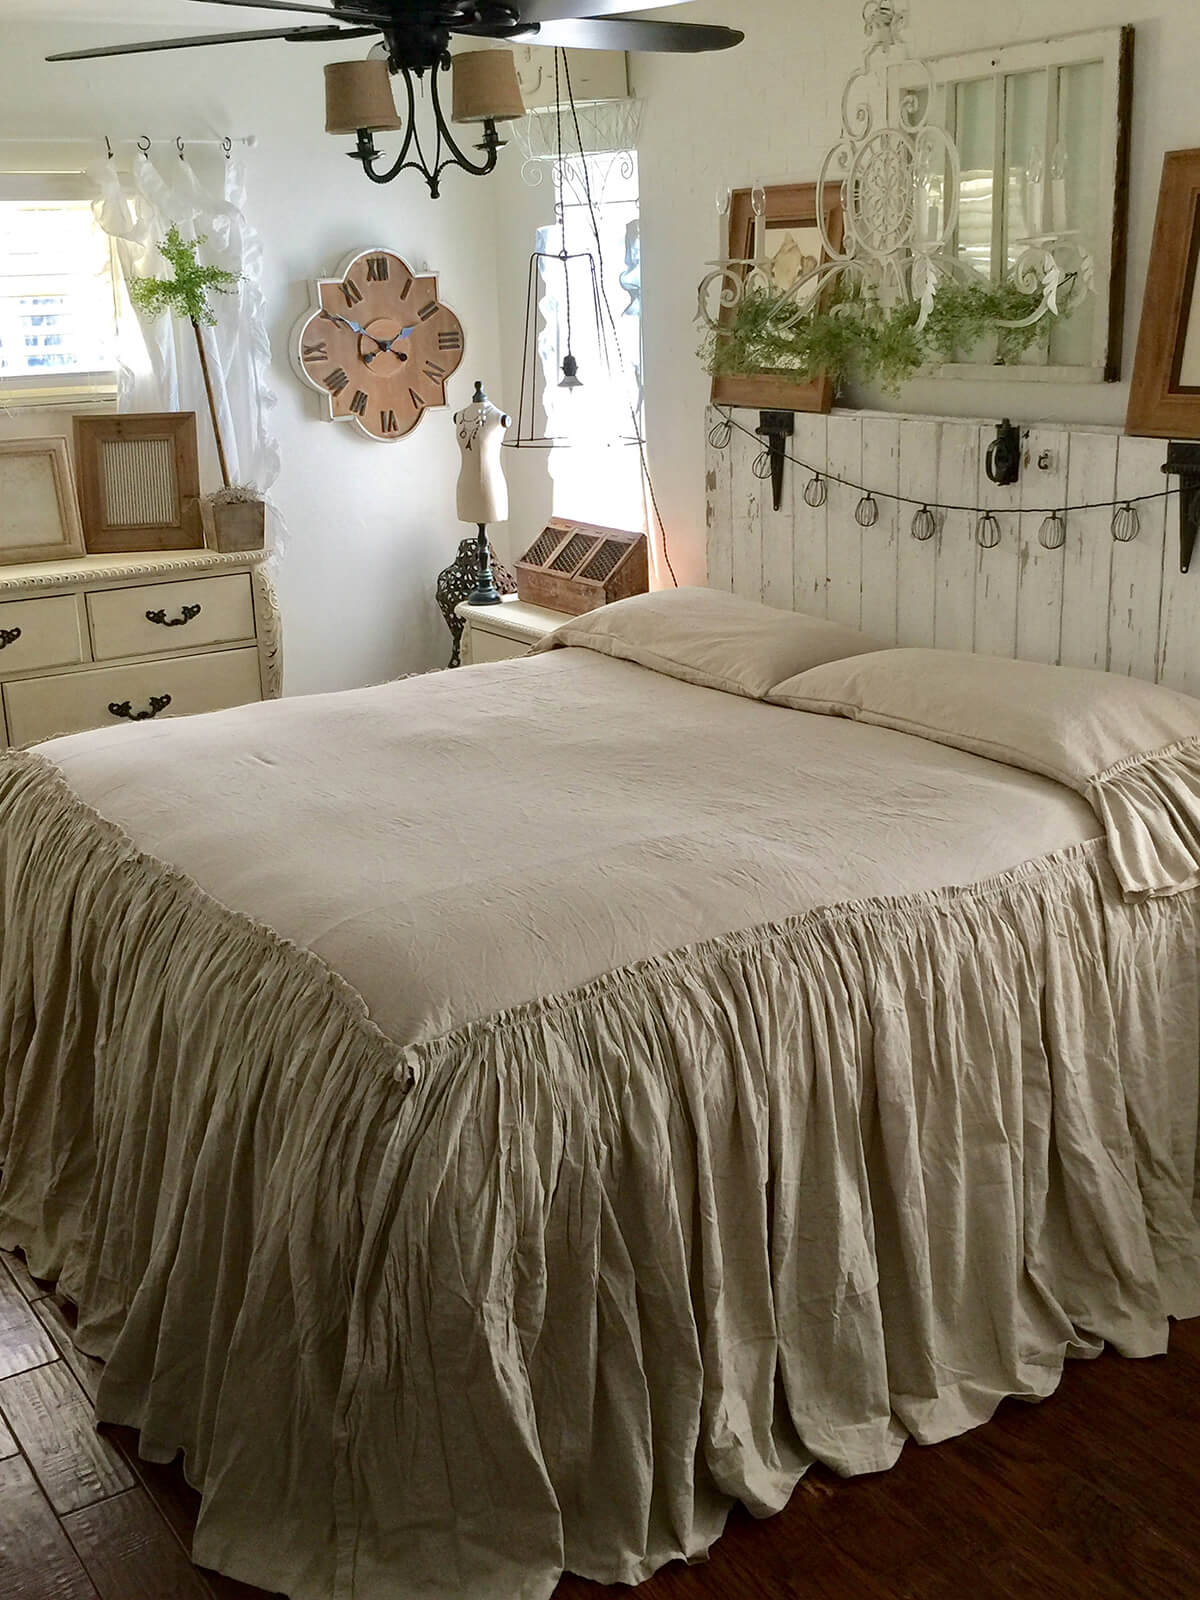 Rustic Wood and Ruffled Bedspreads